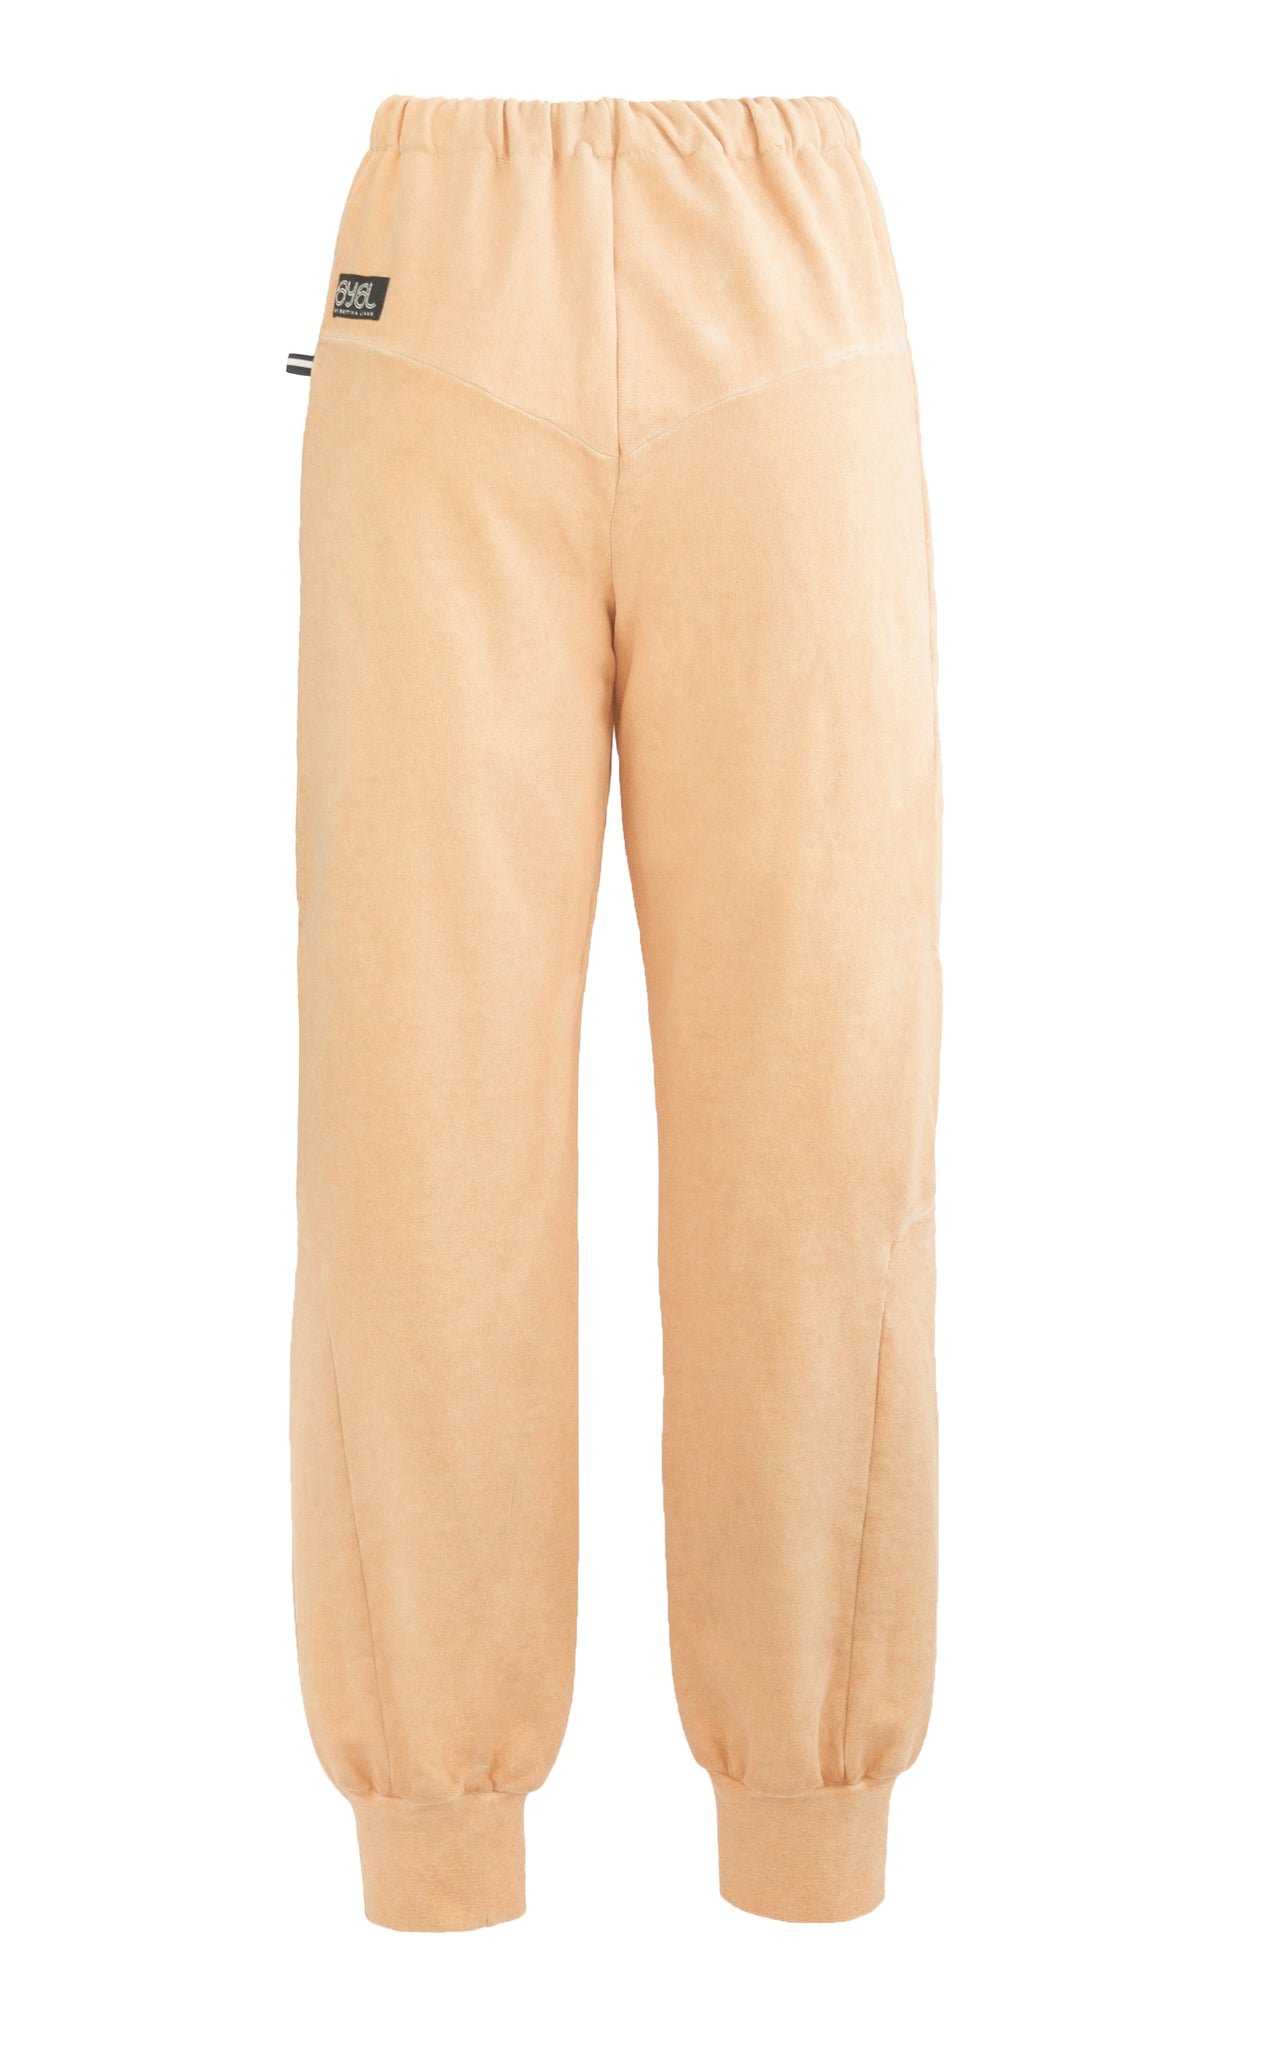 Intersection Track Pants. Apricot